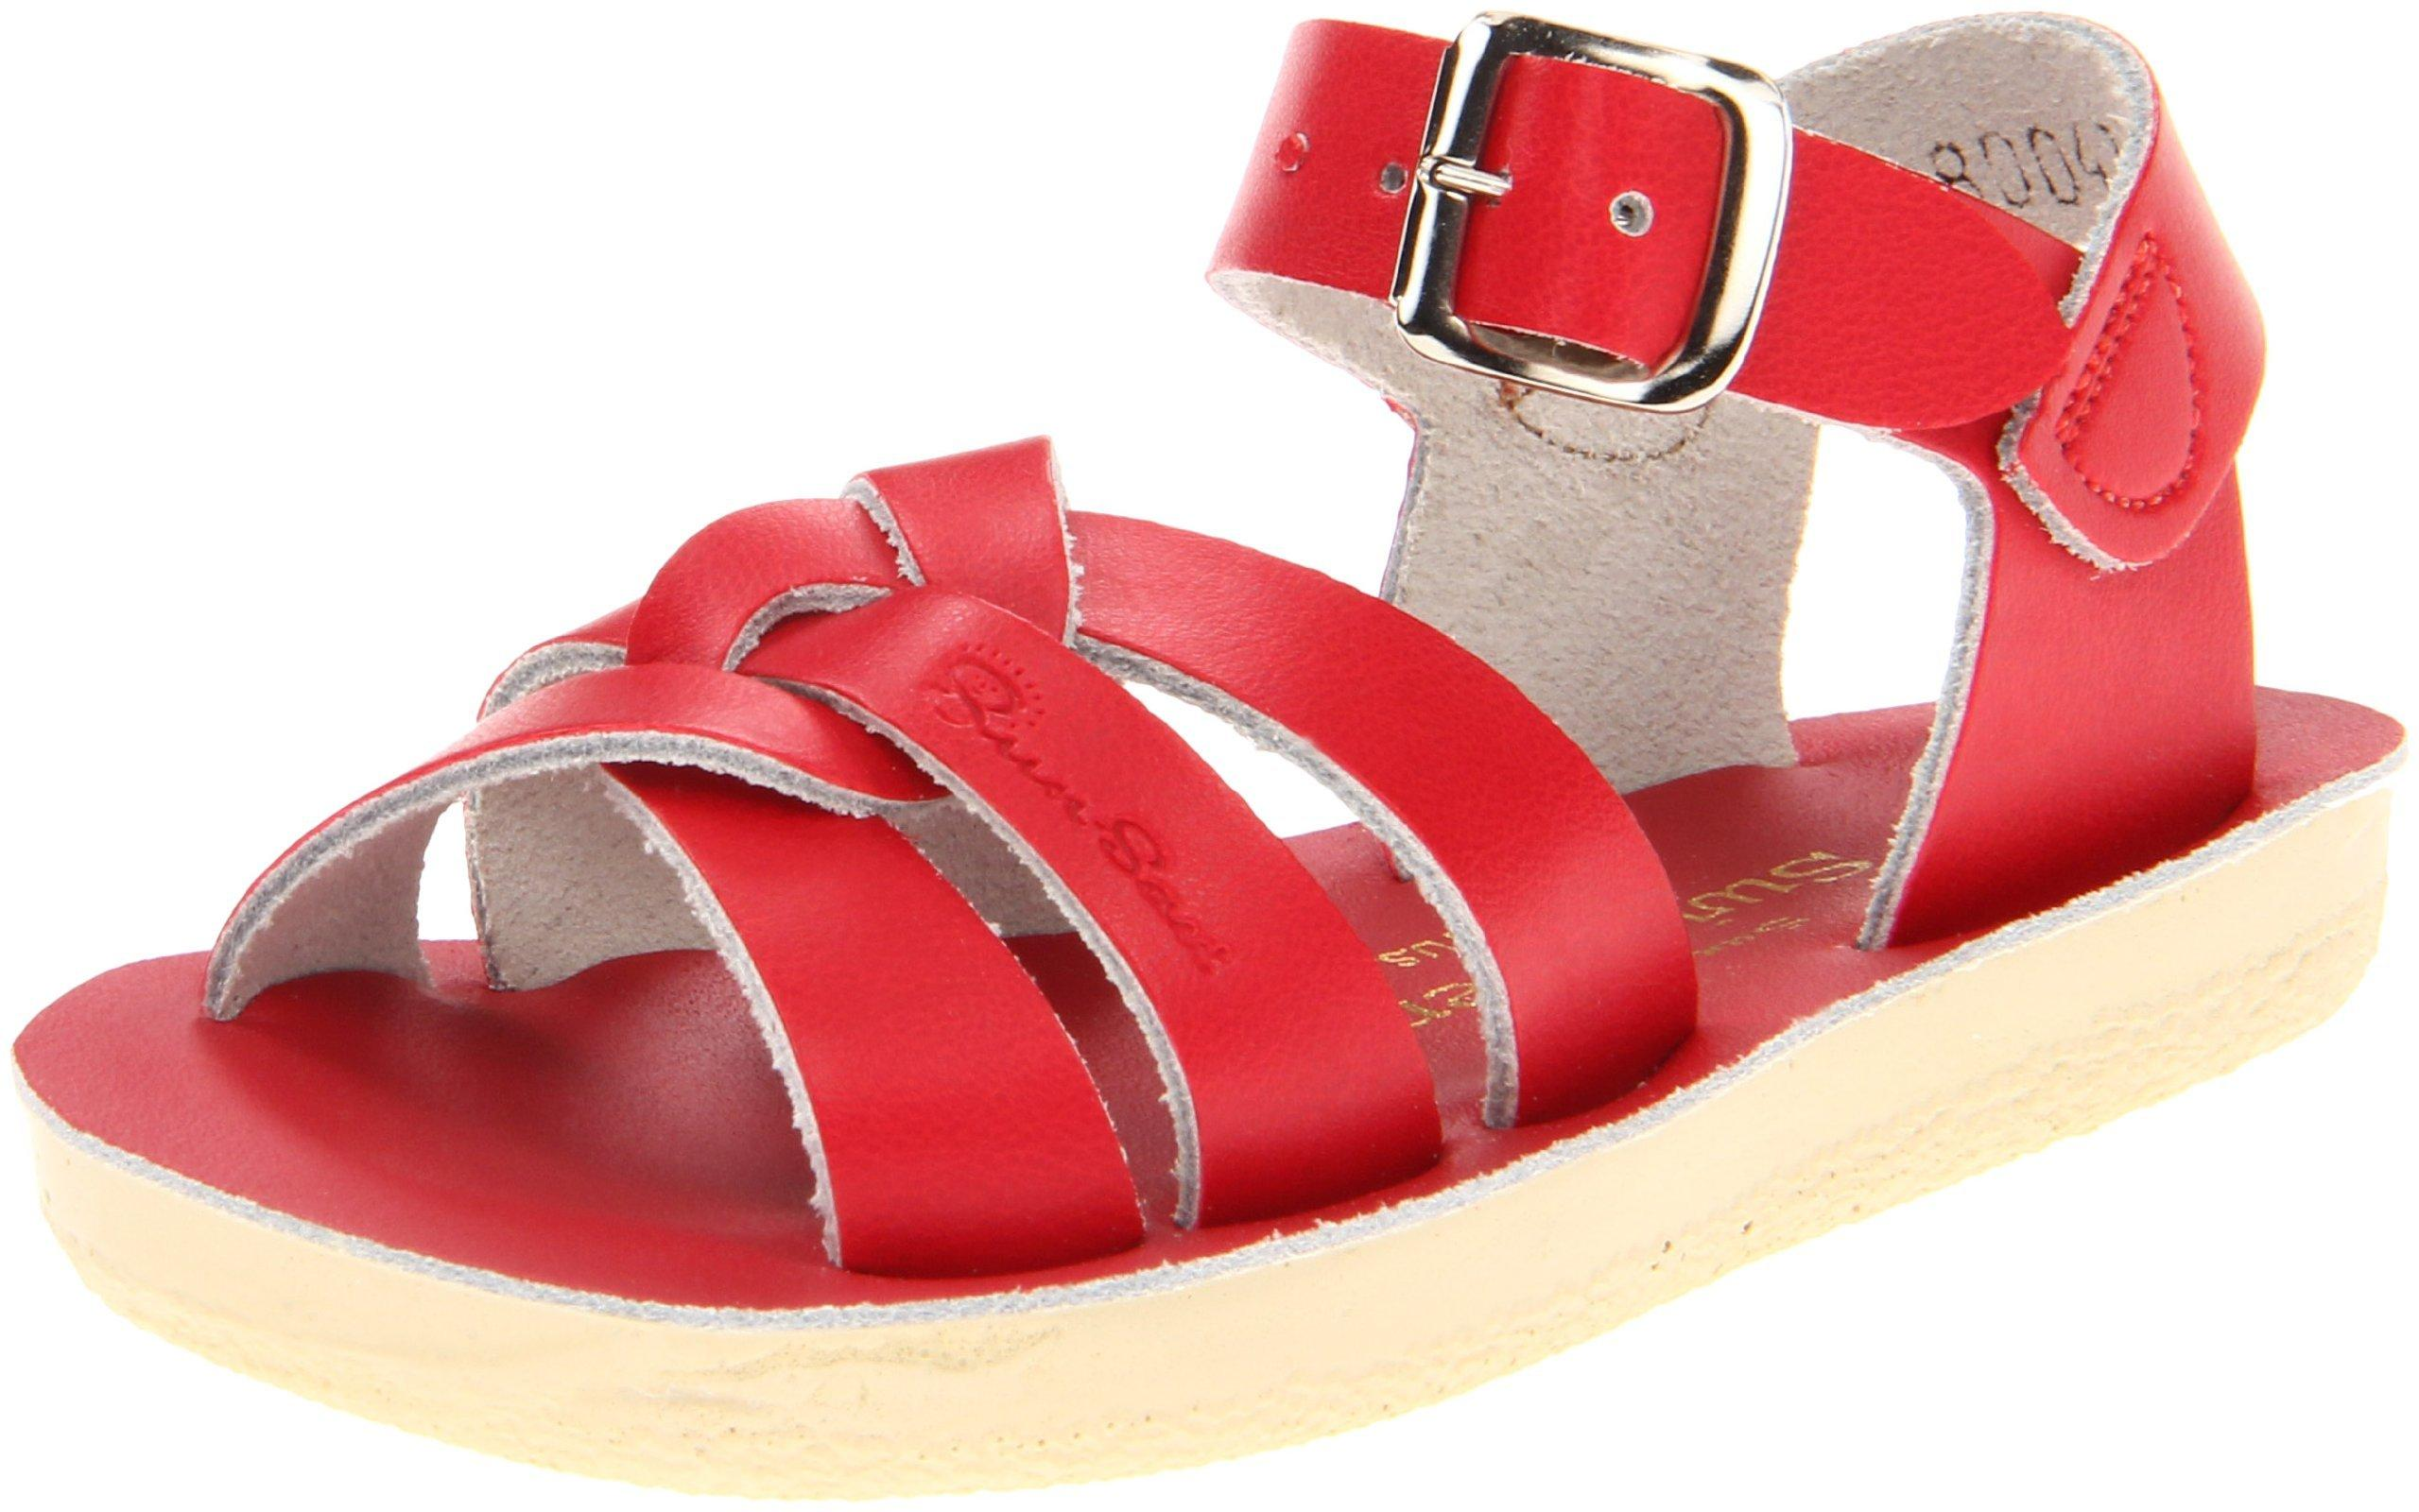 Salt Water Sandals by Hoy Shoe Sun-San Swimmer - Red - Little Kid 13 - 8004-RED-13